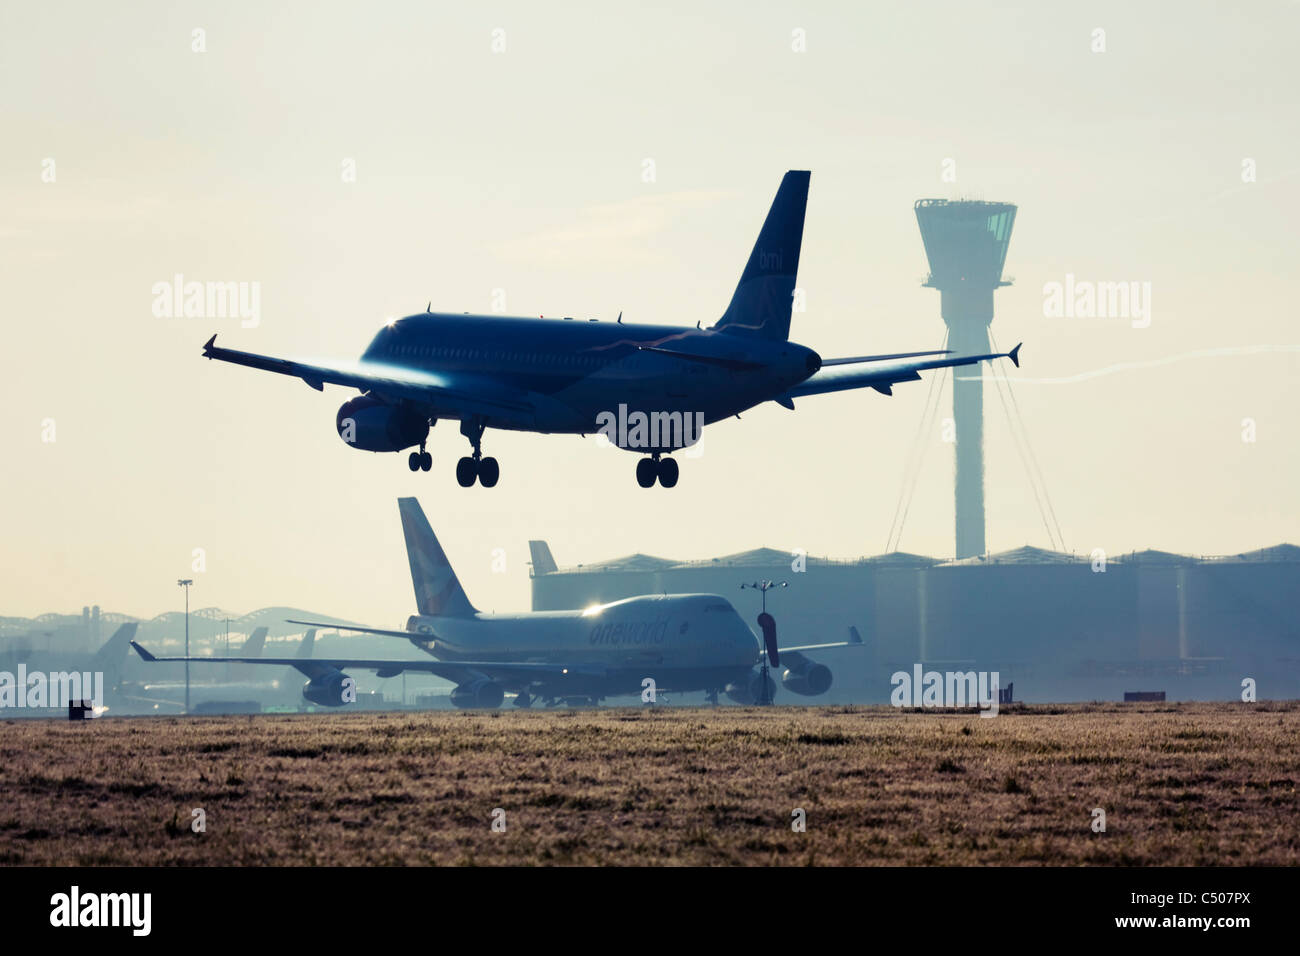 Airplane landing at London Heathrow Airport. Stock Photo